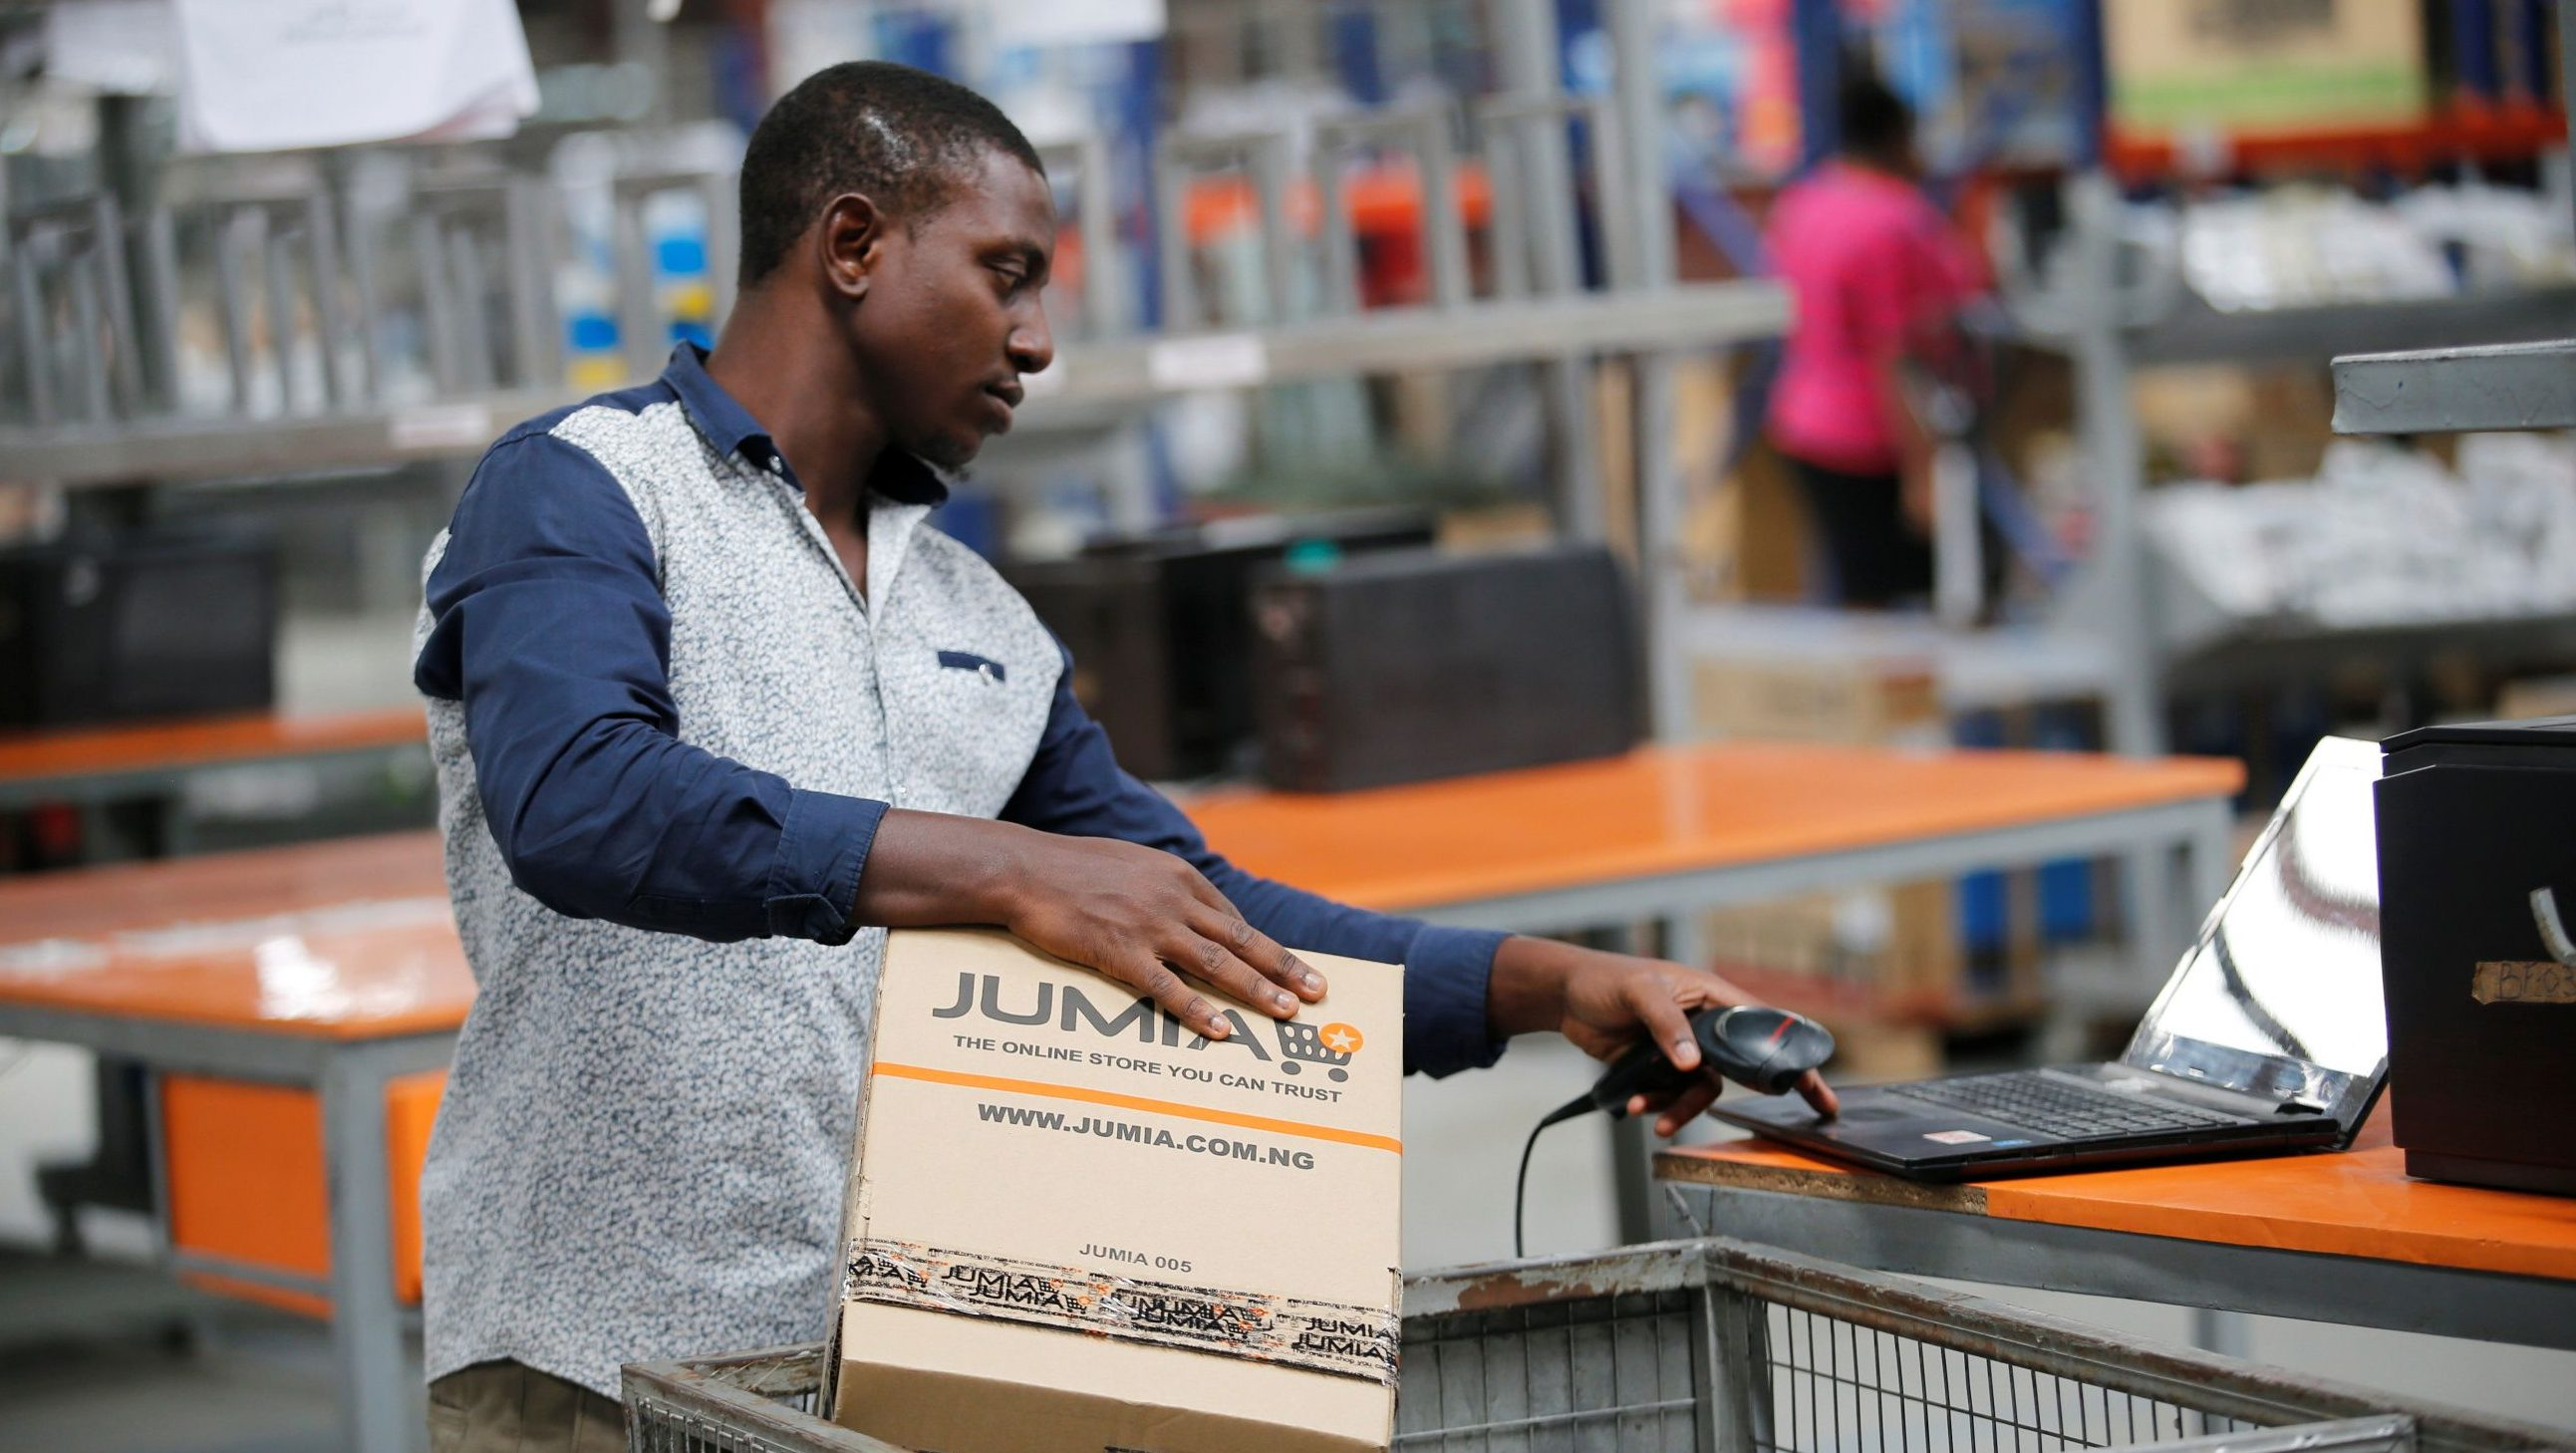 Jumia's losses widened over the last year—and now coronavirus threatens to hobble growth